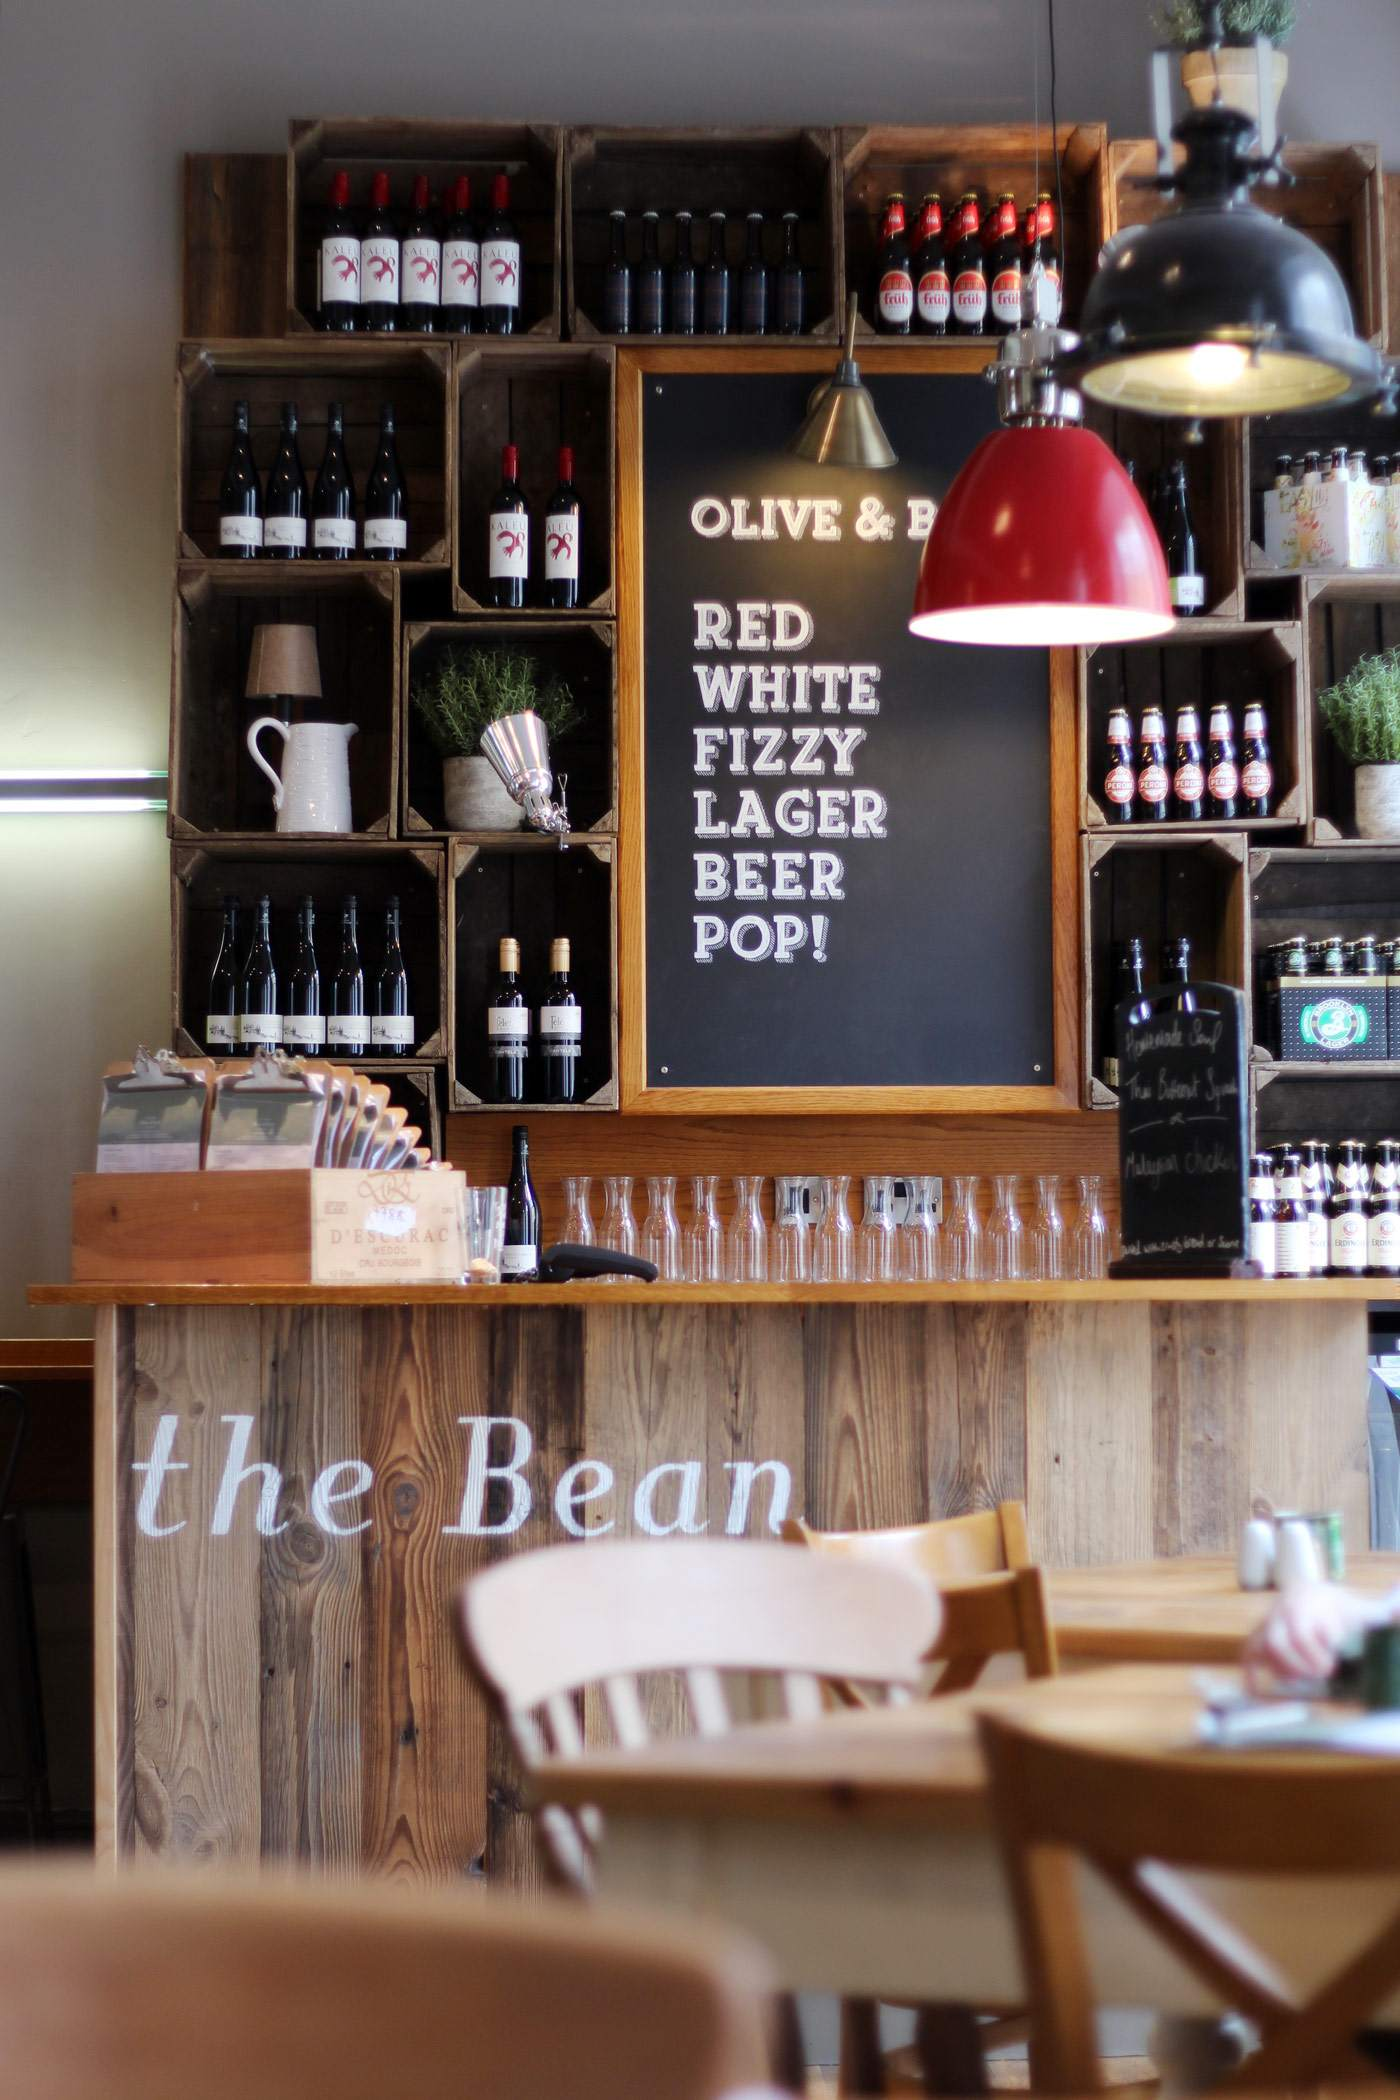 olive-and-bean-newcastle-NE1-review-places-to-eat-lunch